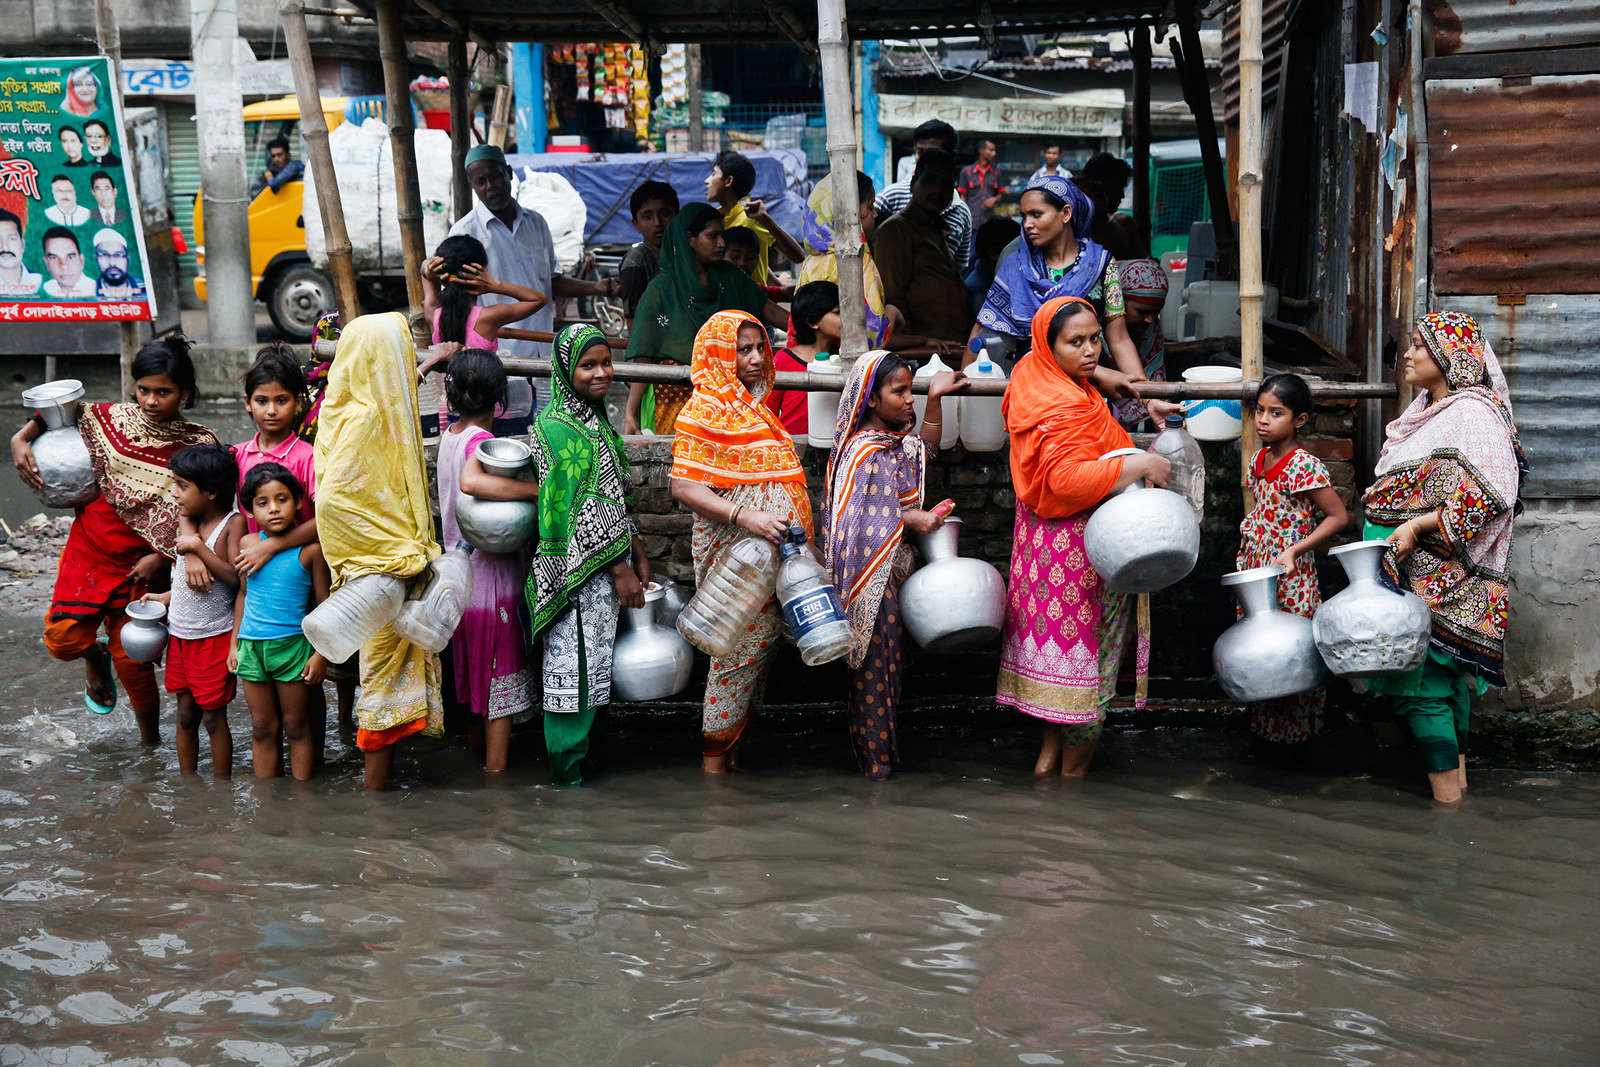 Bangladeshi women and children collect drinking water from a polluted area in Dhaka on June 17, 2017.